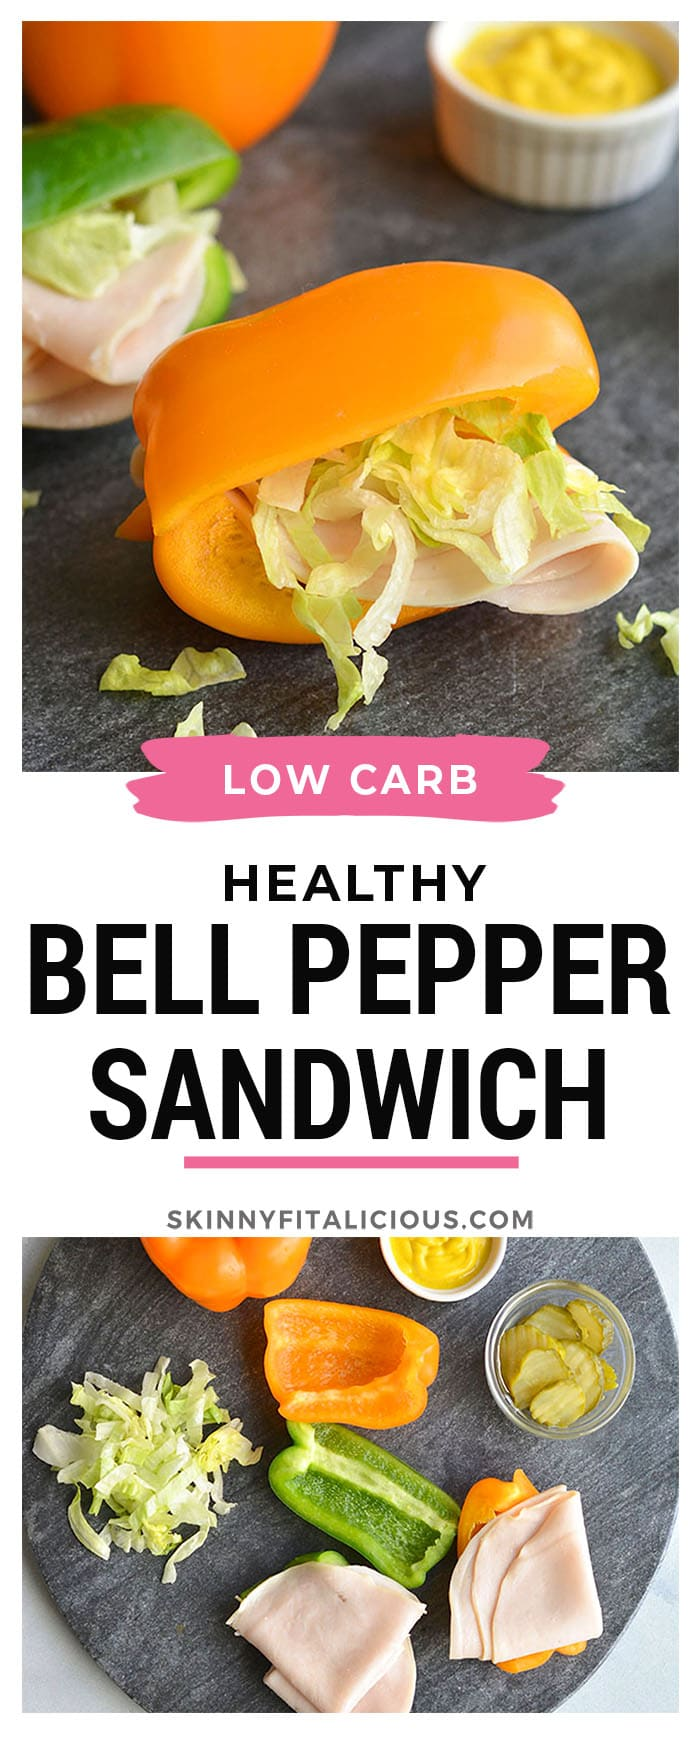 Low Carb Bell Pepper Sandwich! Swap the sandwich bread for sliced bell pepper. Add your toppings for an easy, low calorie lunch or snack. Low Carb + Gluten Free + Low Calorie + Paleo